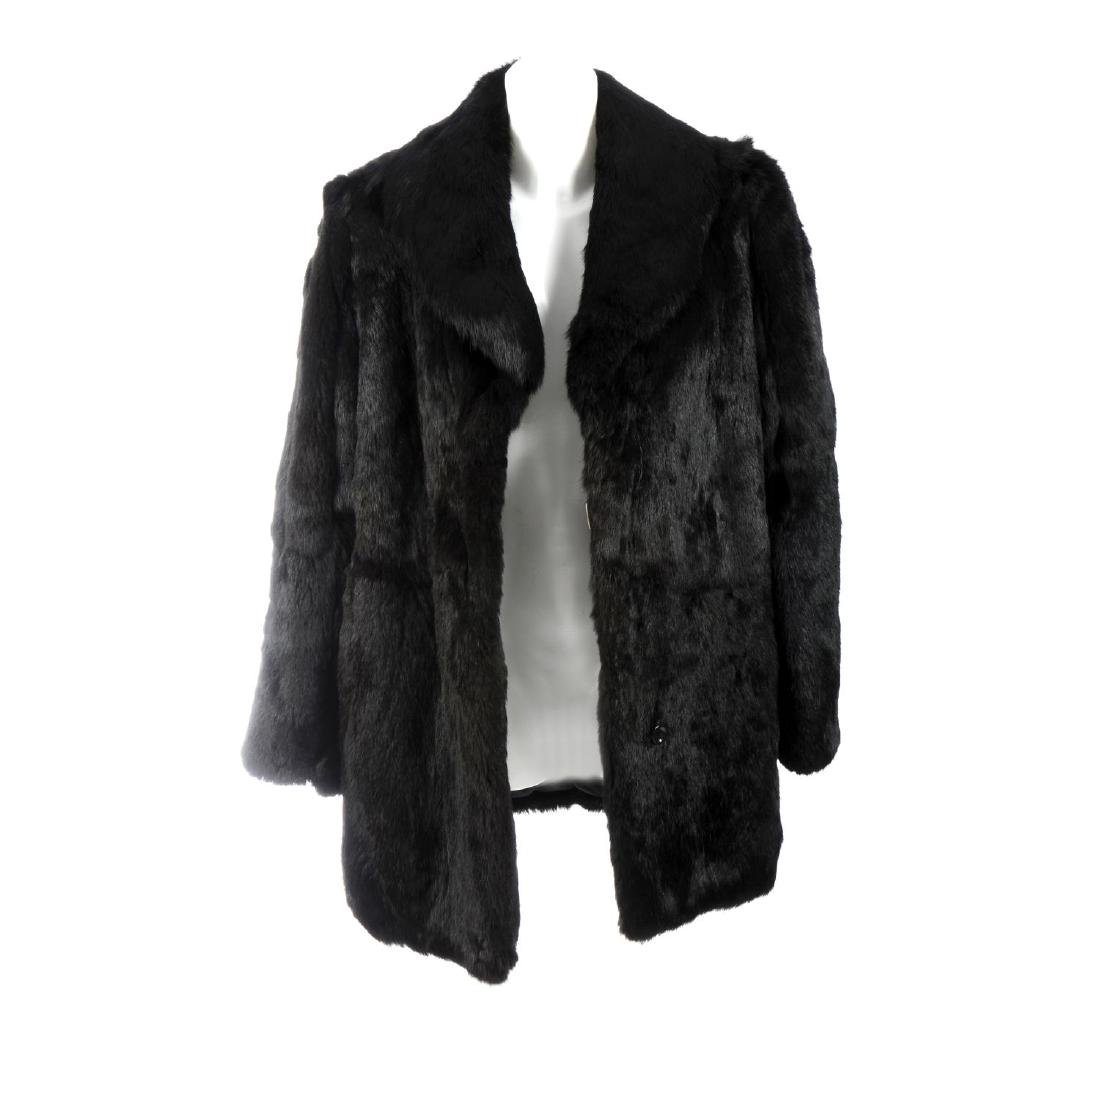 Two coney fur jackets. To include a black coney fur